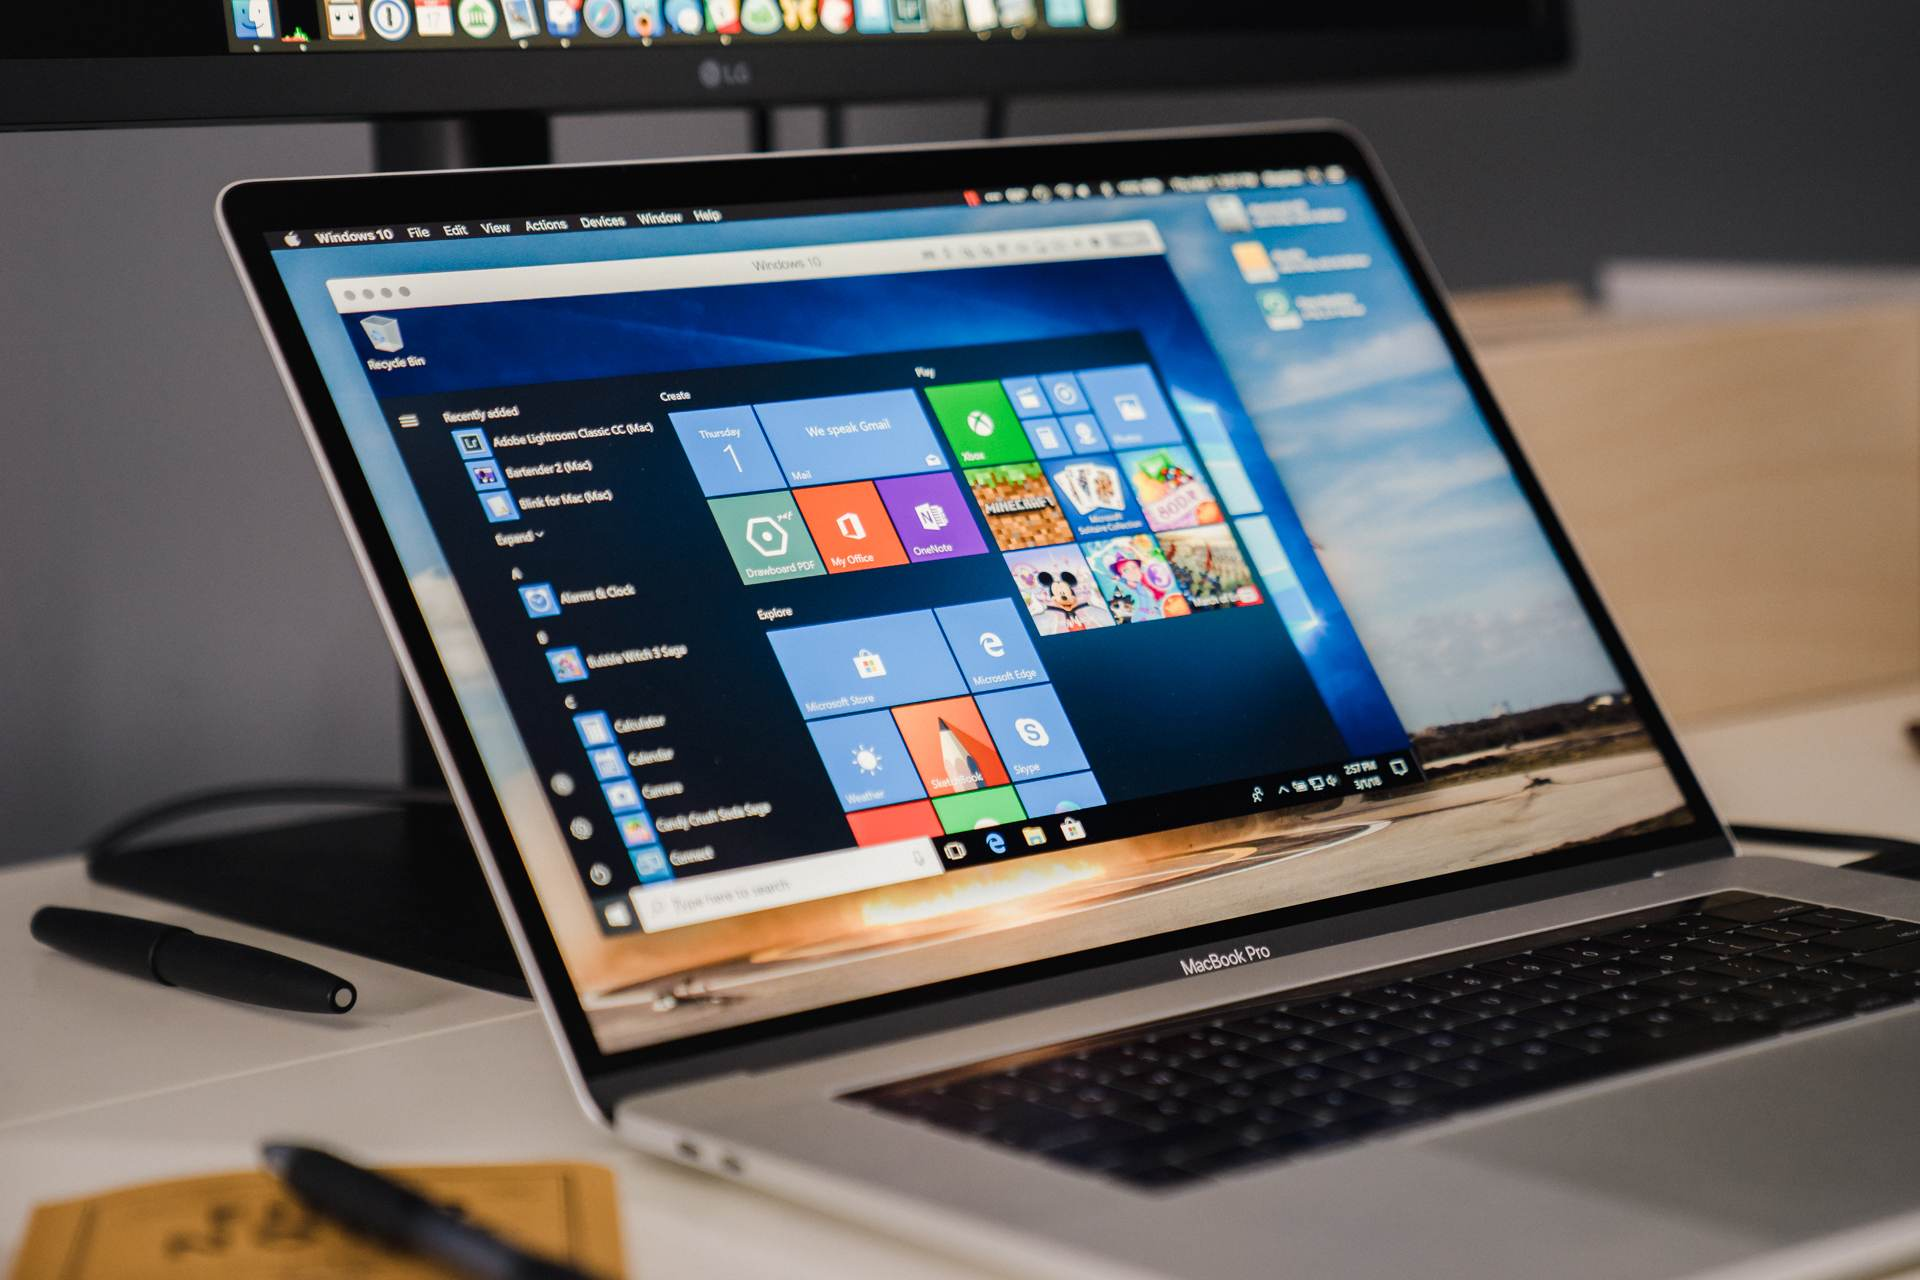 The best app for running Windows on macOS - Parallels Desktop